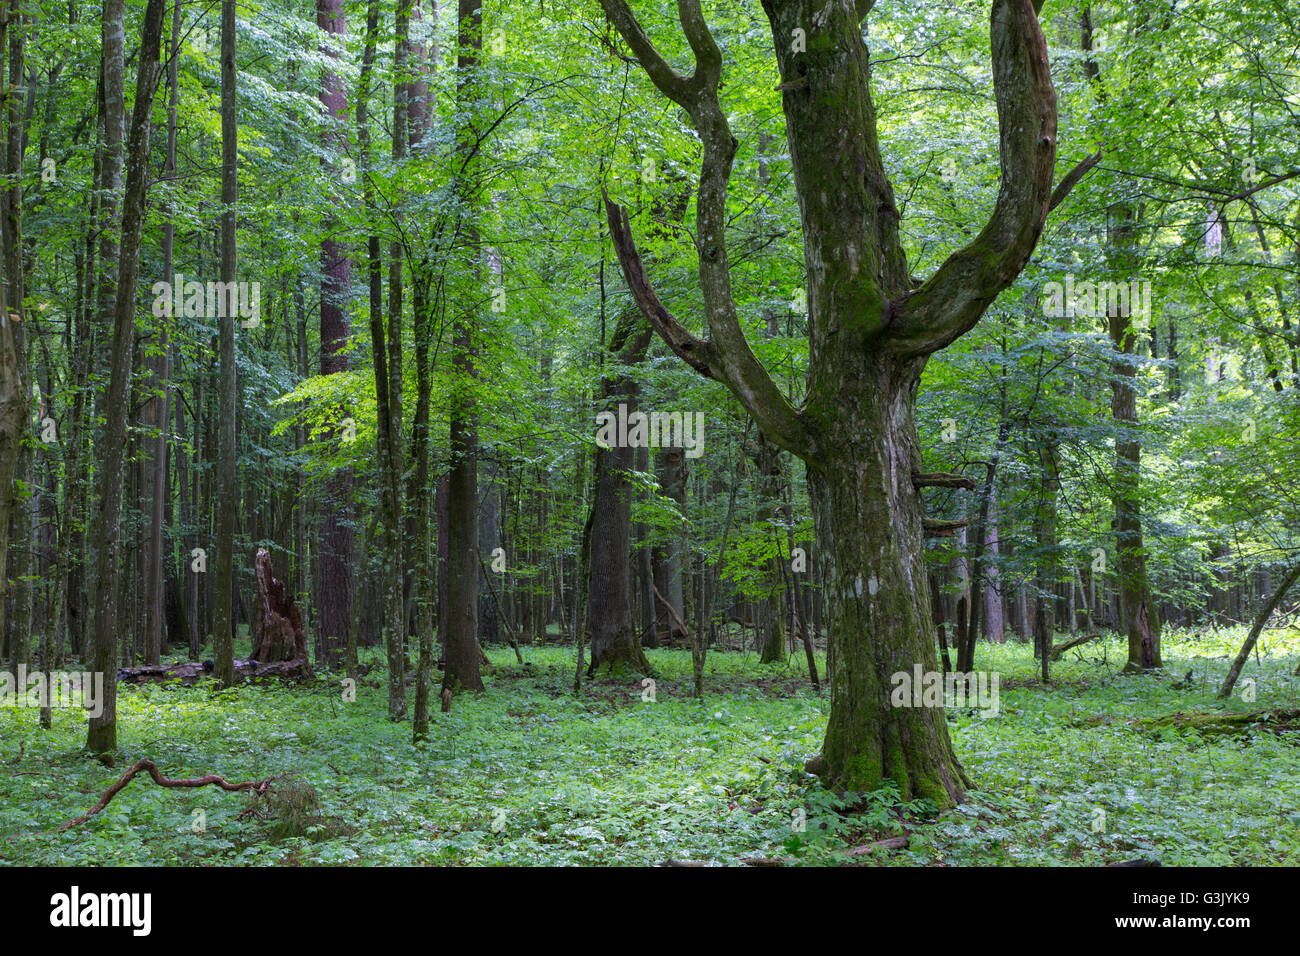 Old monumental Hornbeam Tree(Carpinus betulus) in front of deciduous stand in summer, Bialowieza Forest,Poland,Europe - Stock Image